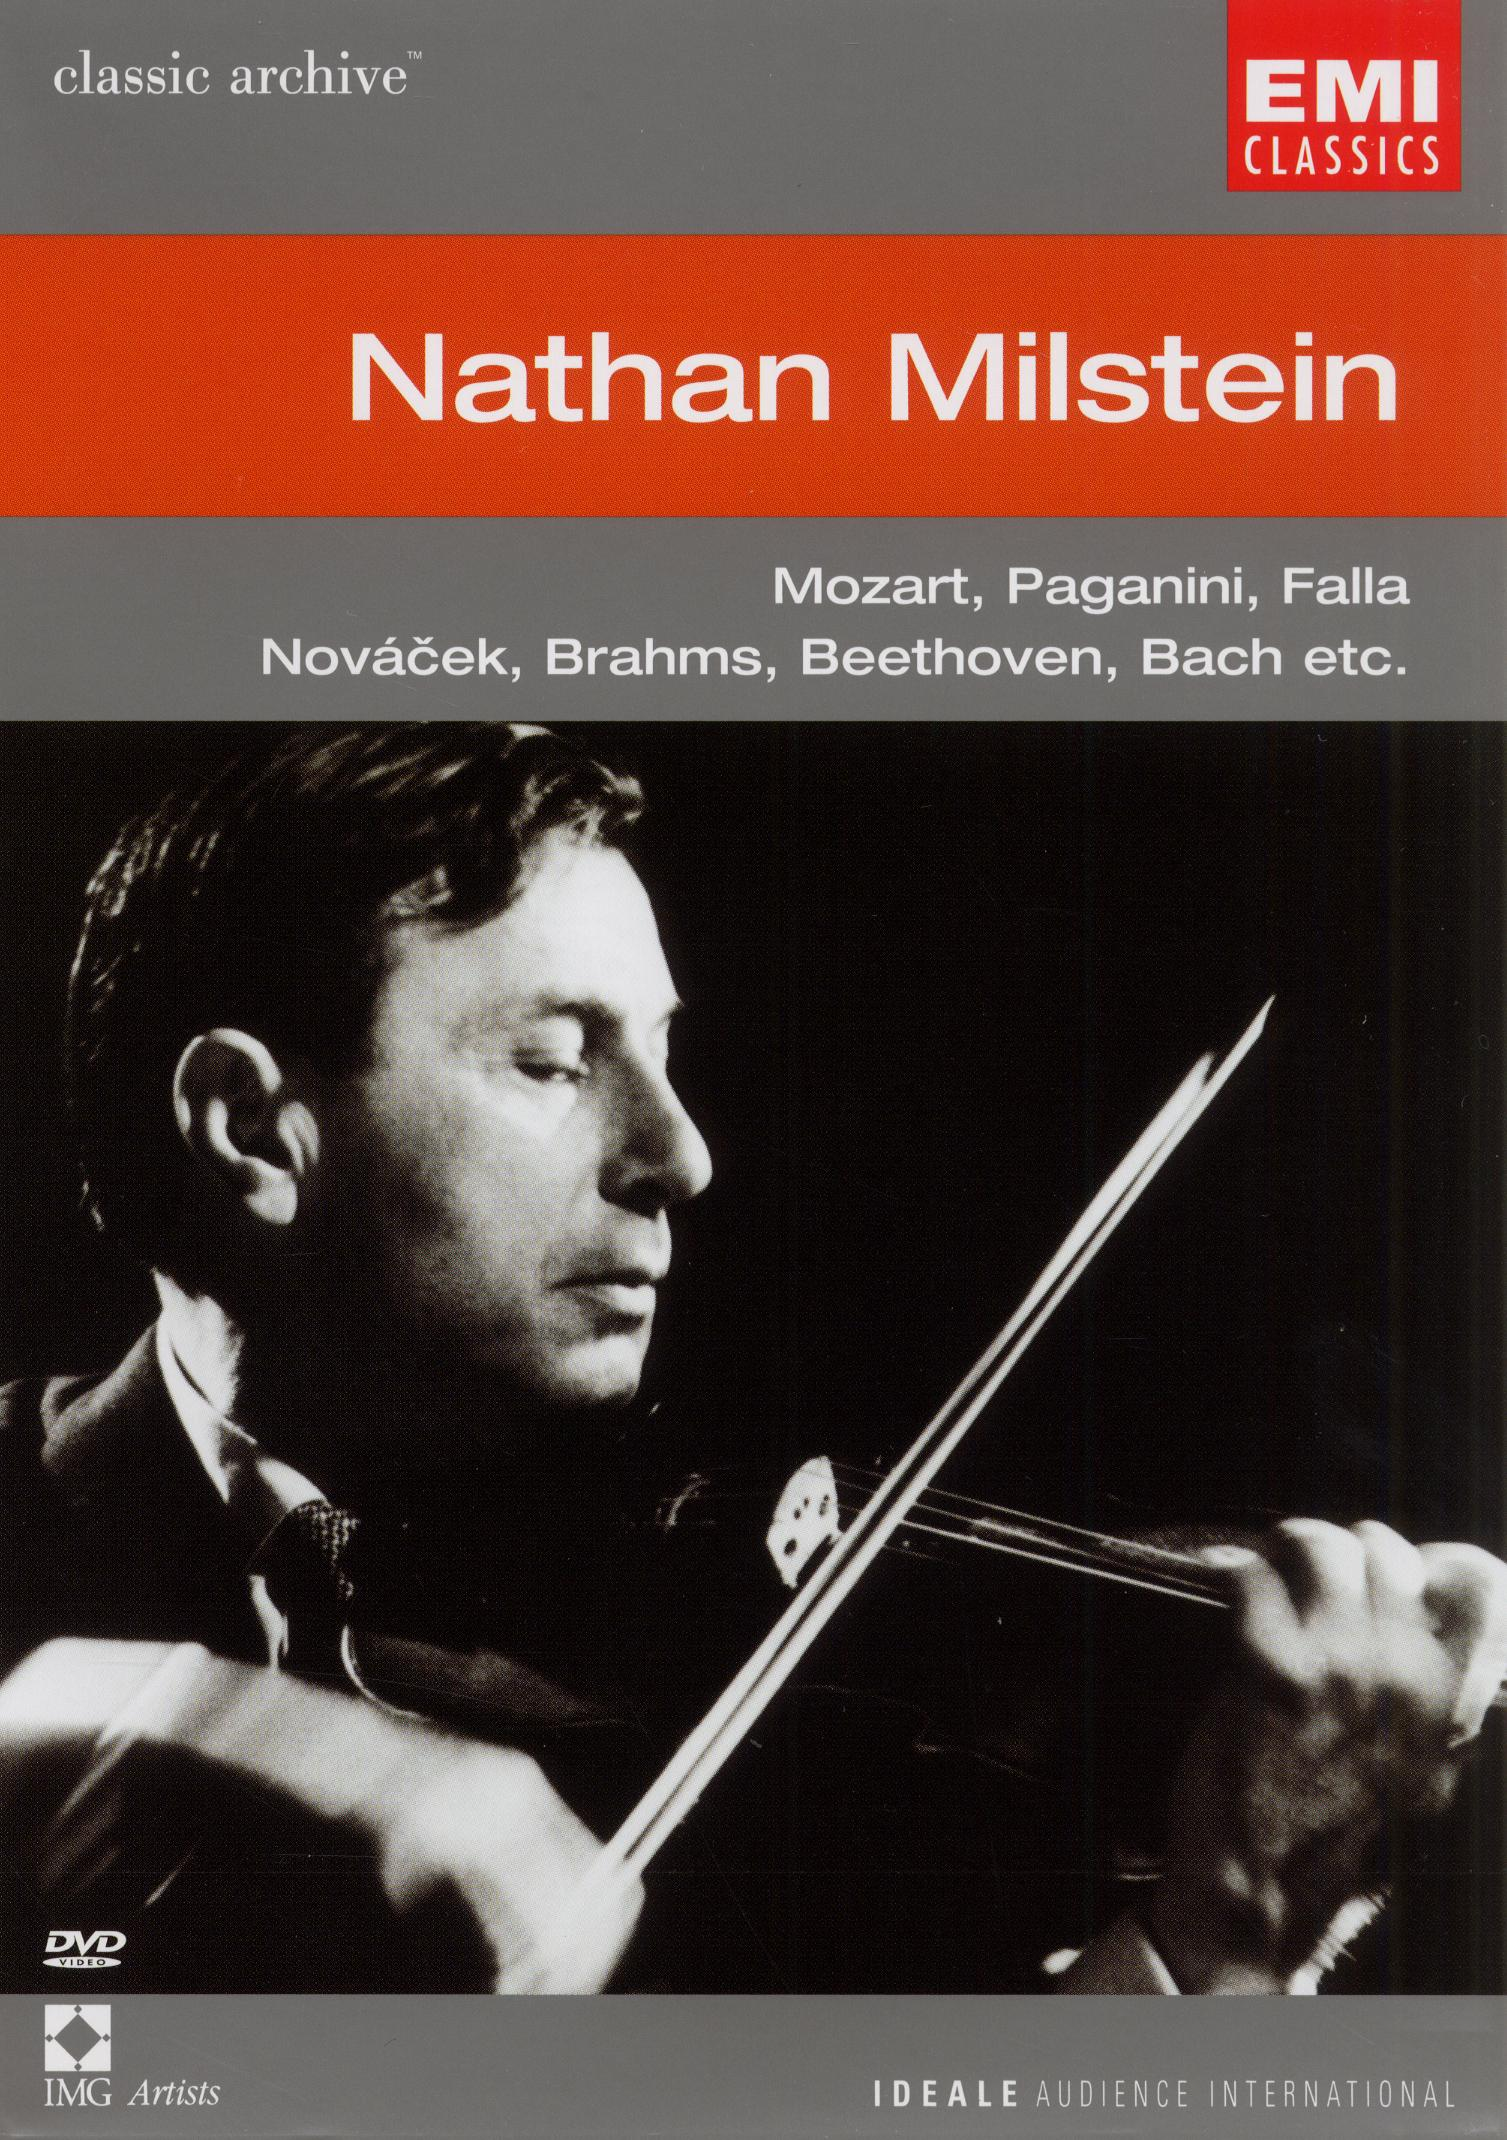 Classic Archive: Nathan Milstein - Mozart, Paganini, Falla, Novacek, Brahms, Beethoven, Bach